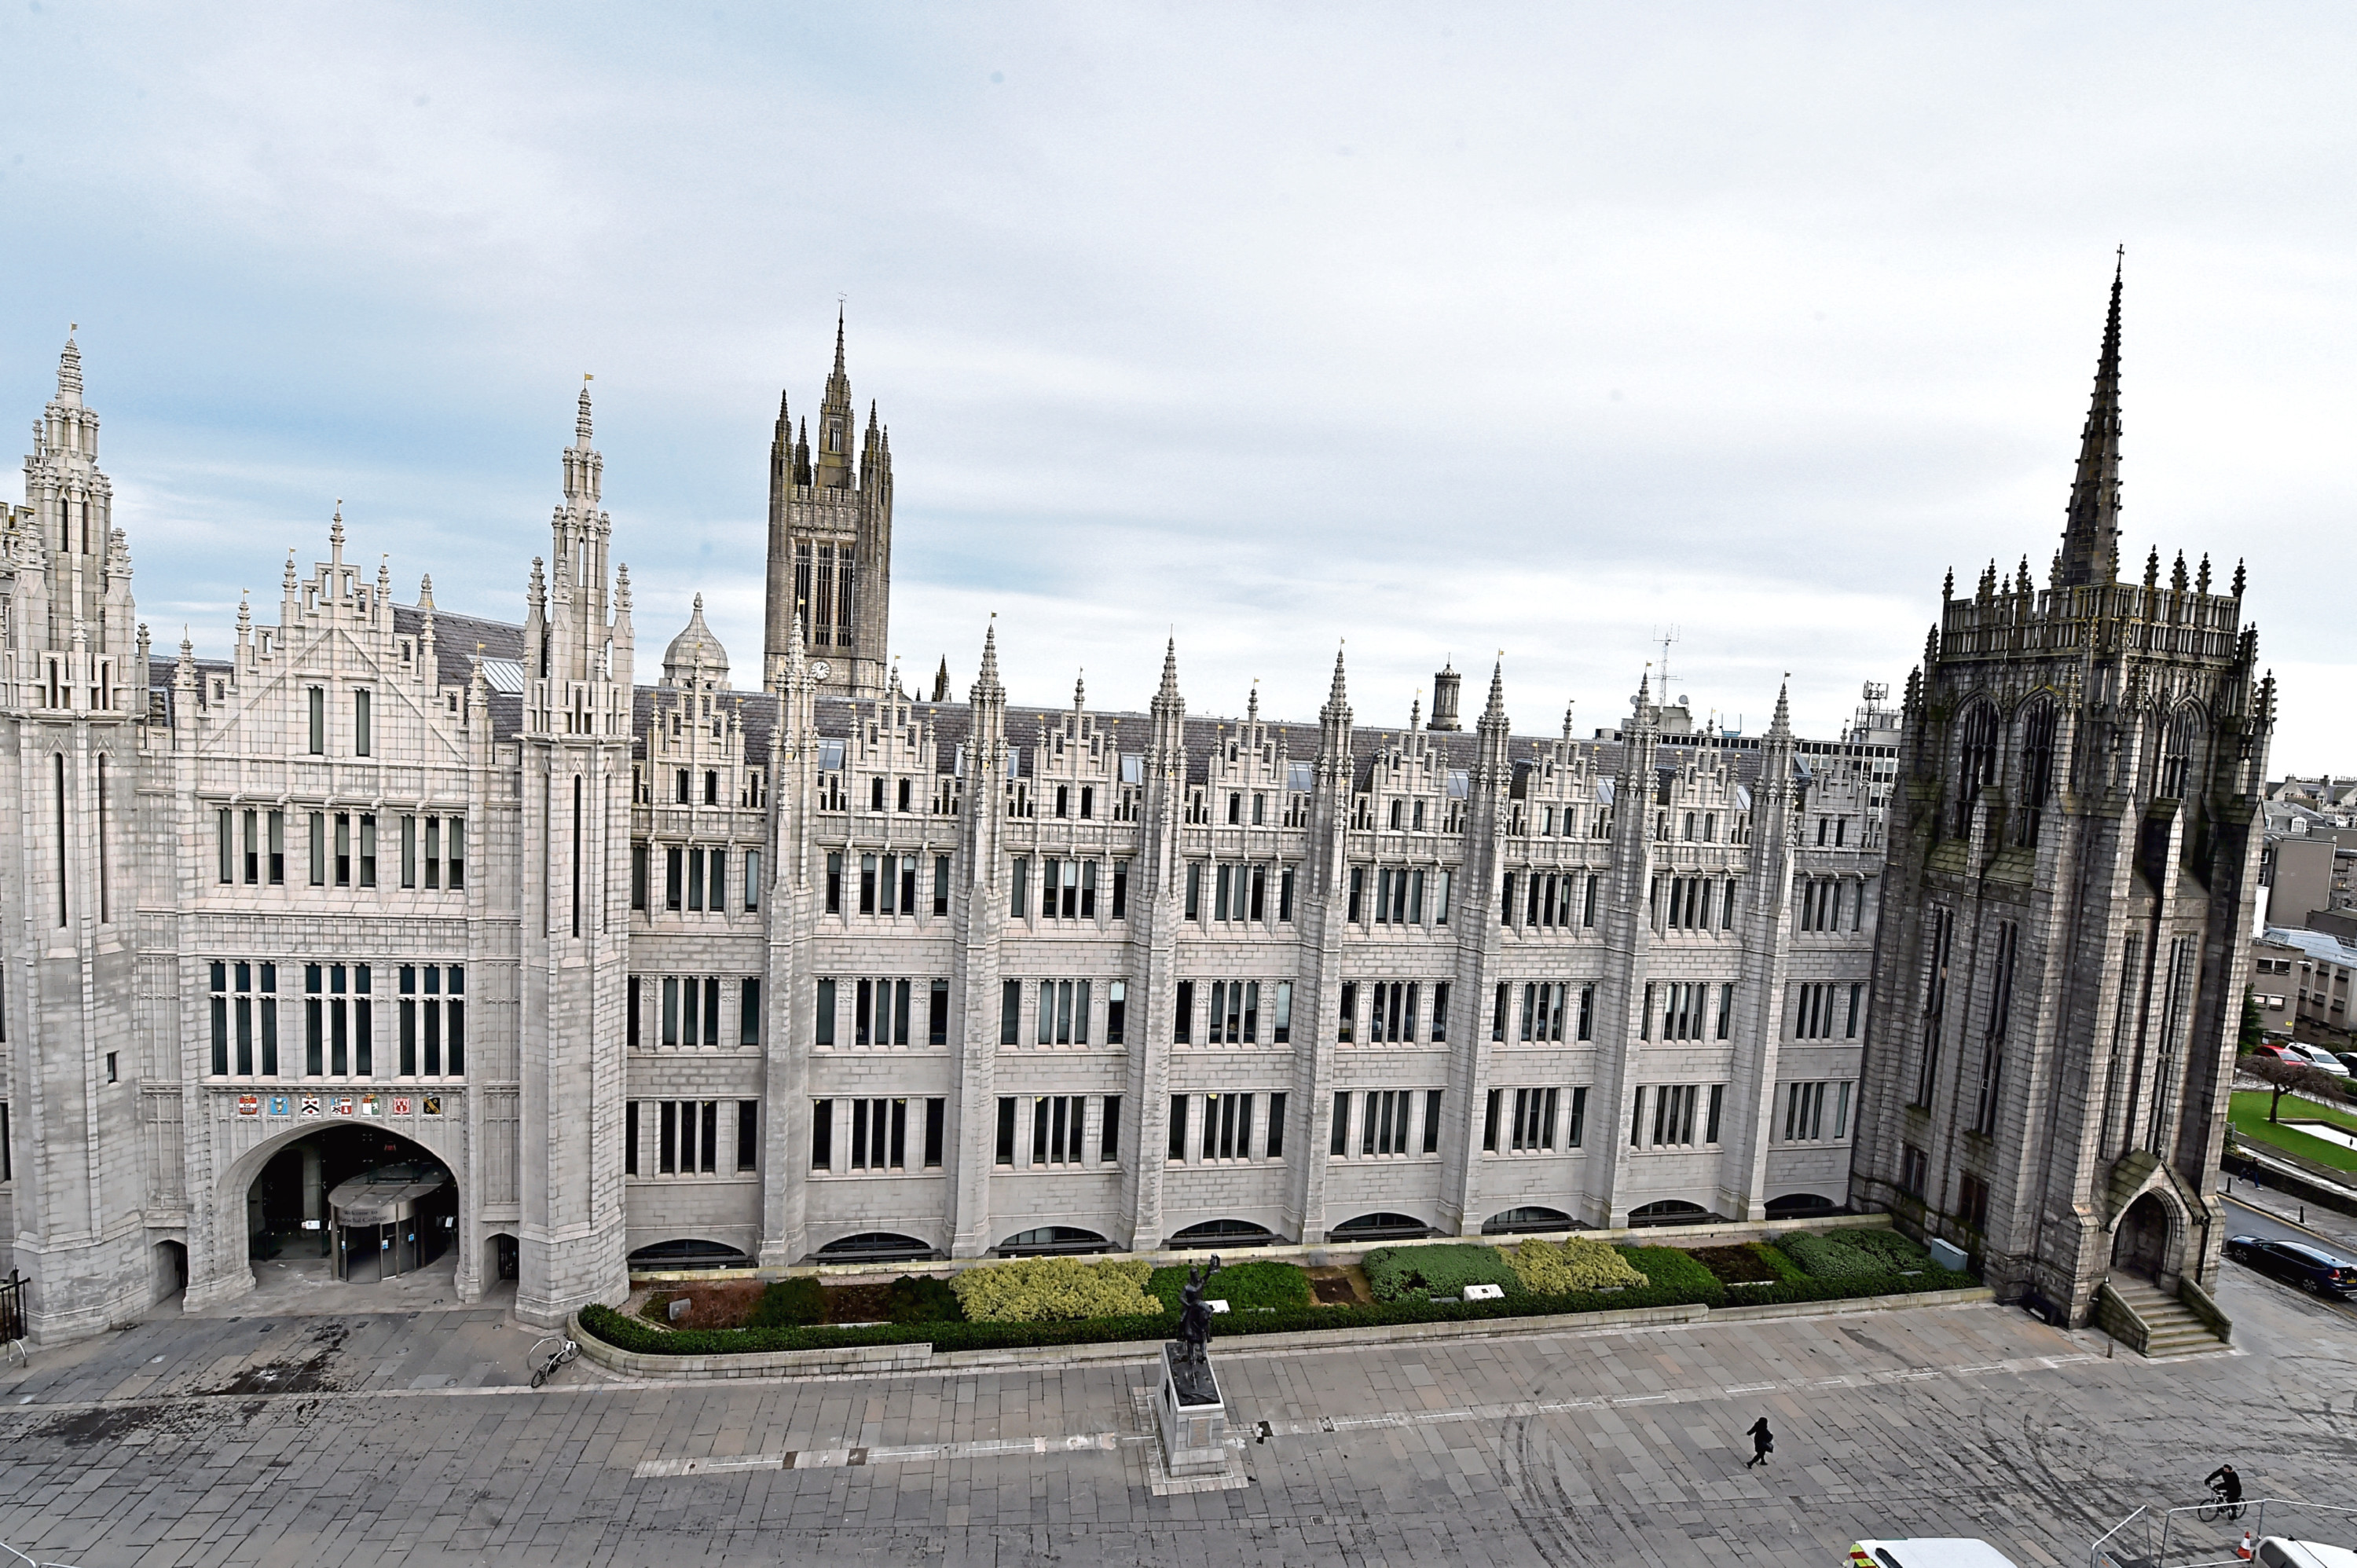 Protests will take place outside Marischal College on Friday